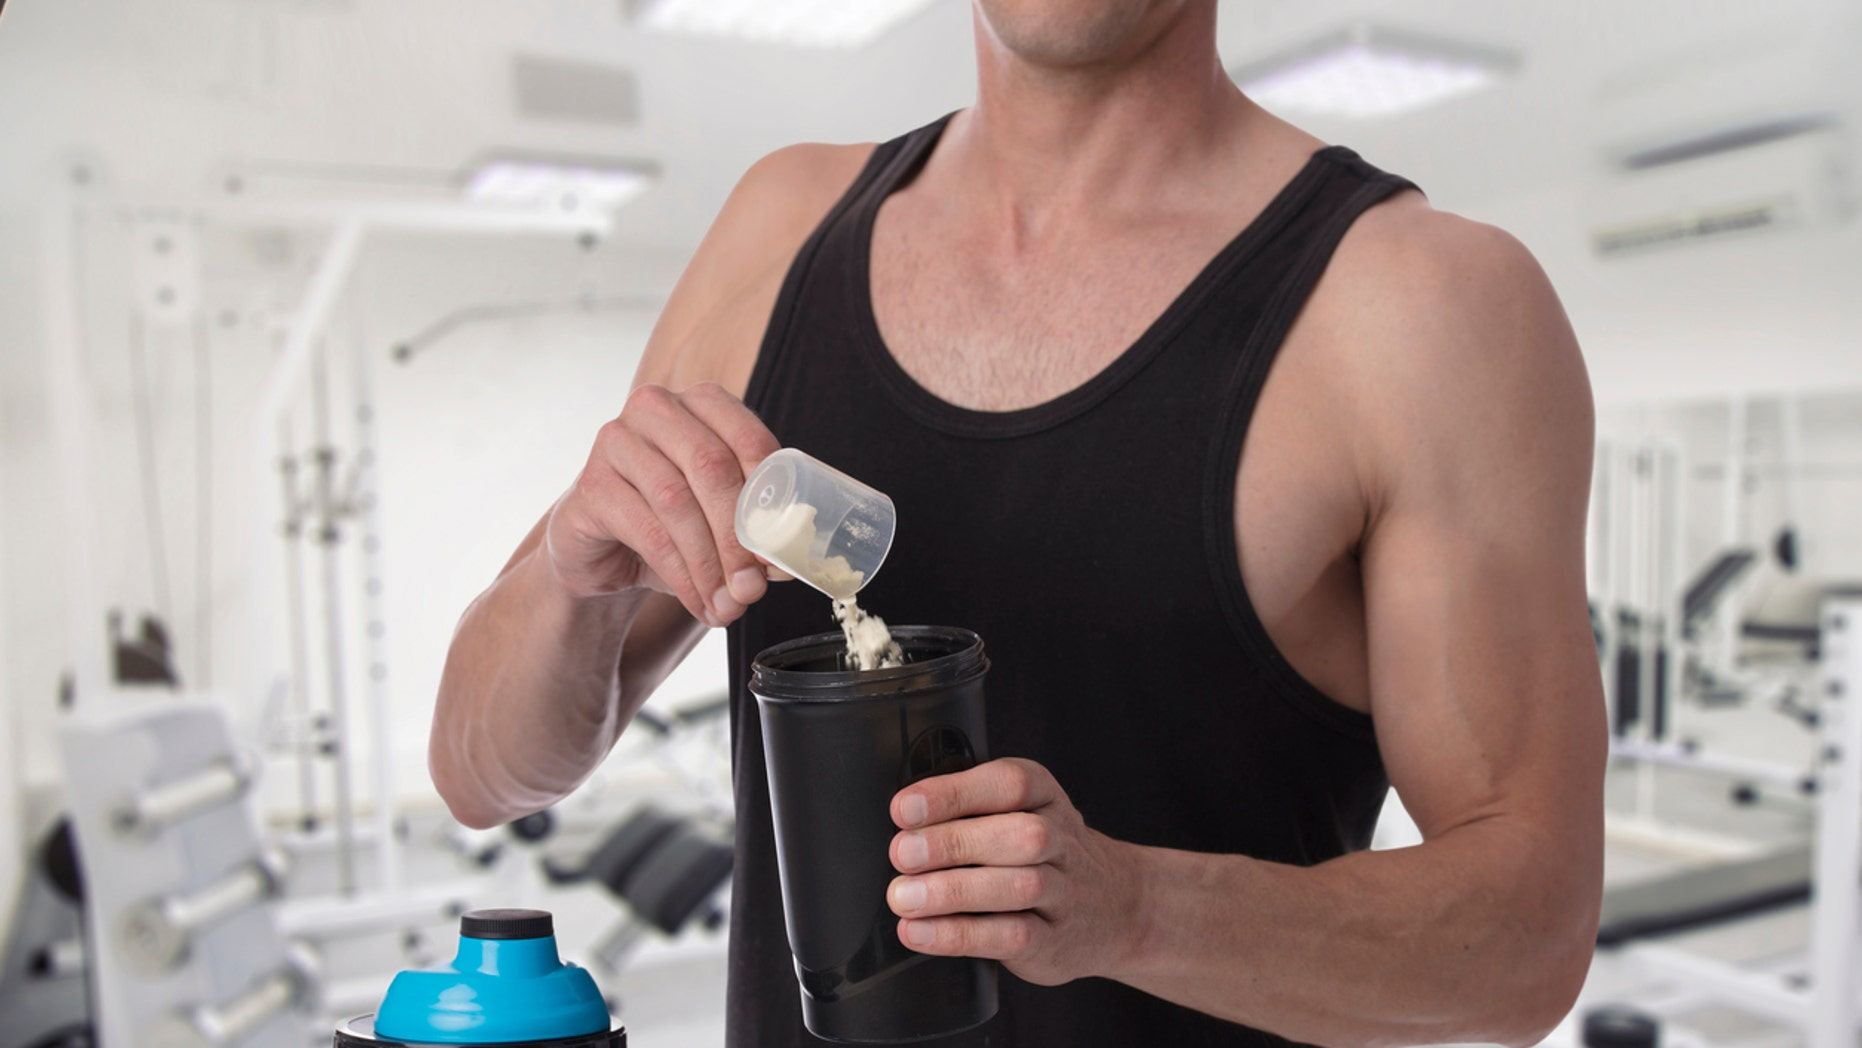 A new study showed 70 percent of protein powders tested had detectable levels of lead, 74 percent had cadmium and 55 percent had BPA, the chemical formula found in many plastics.